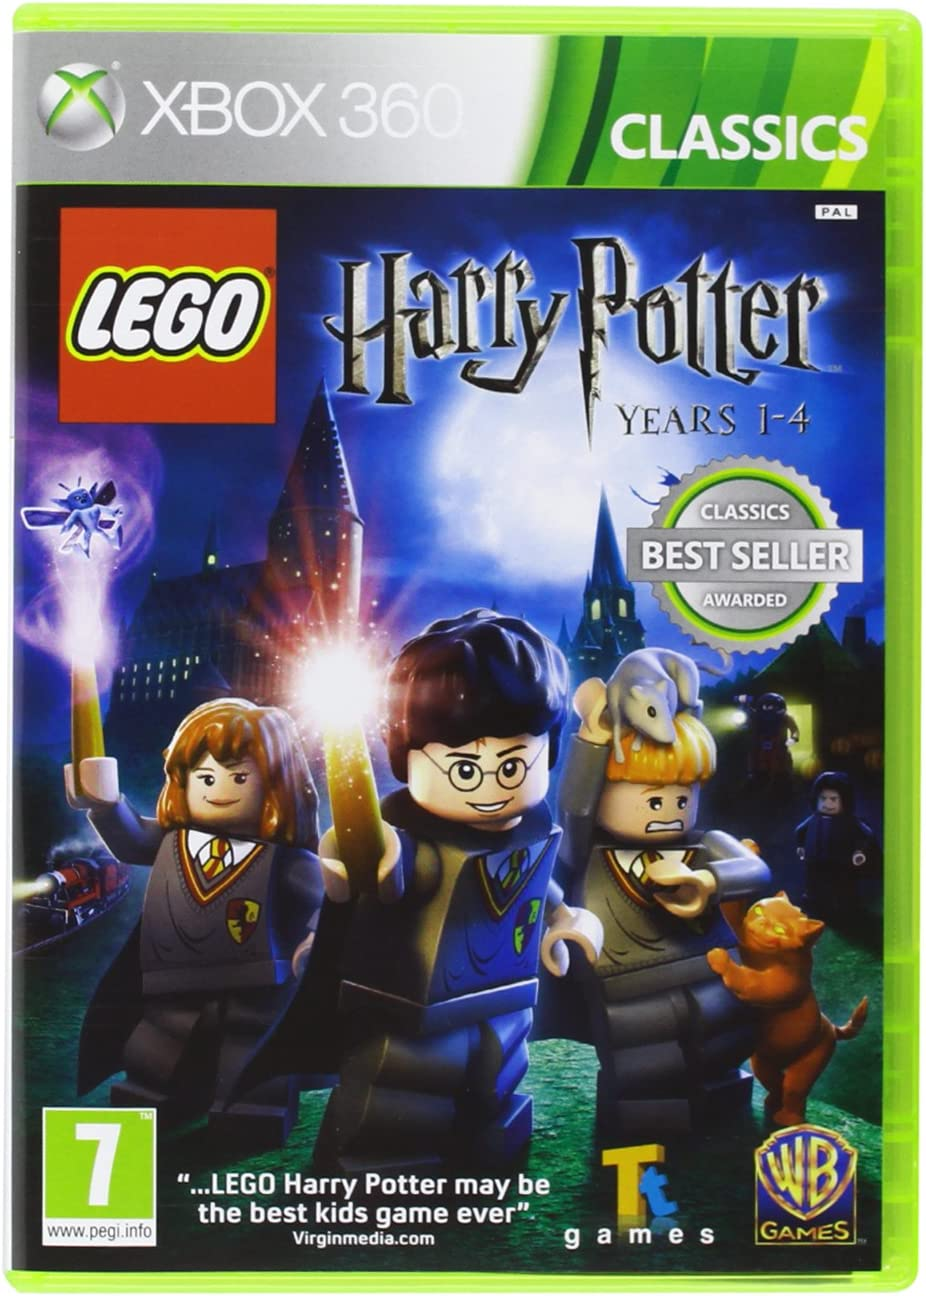 Xbox 360 Lego Harry Potter 1 4 BRAND